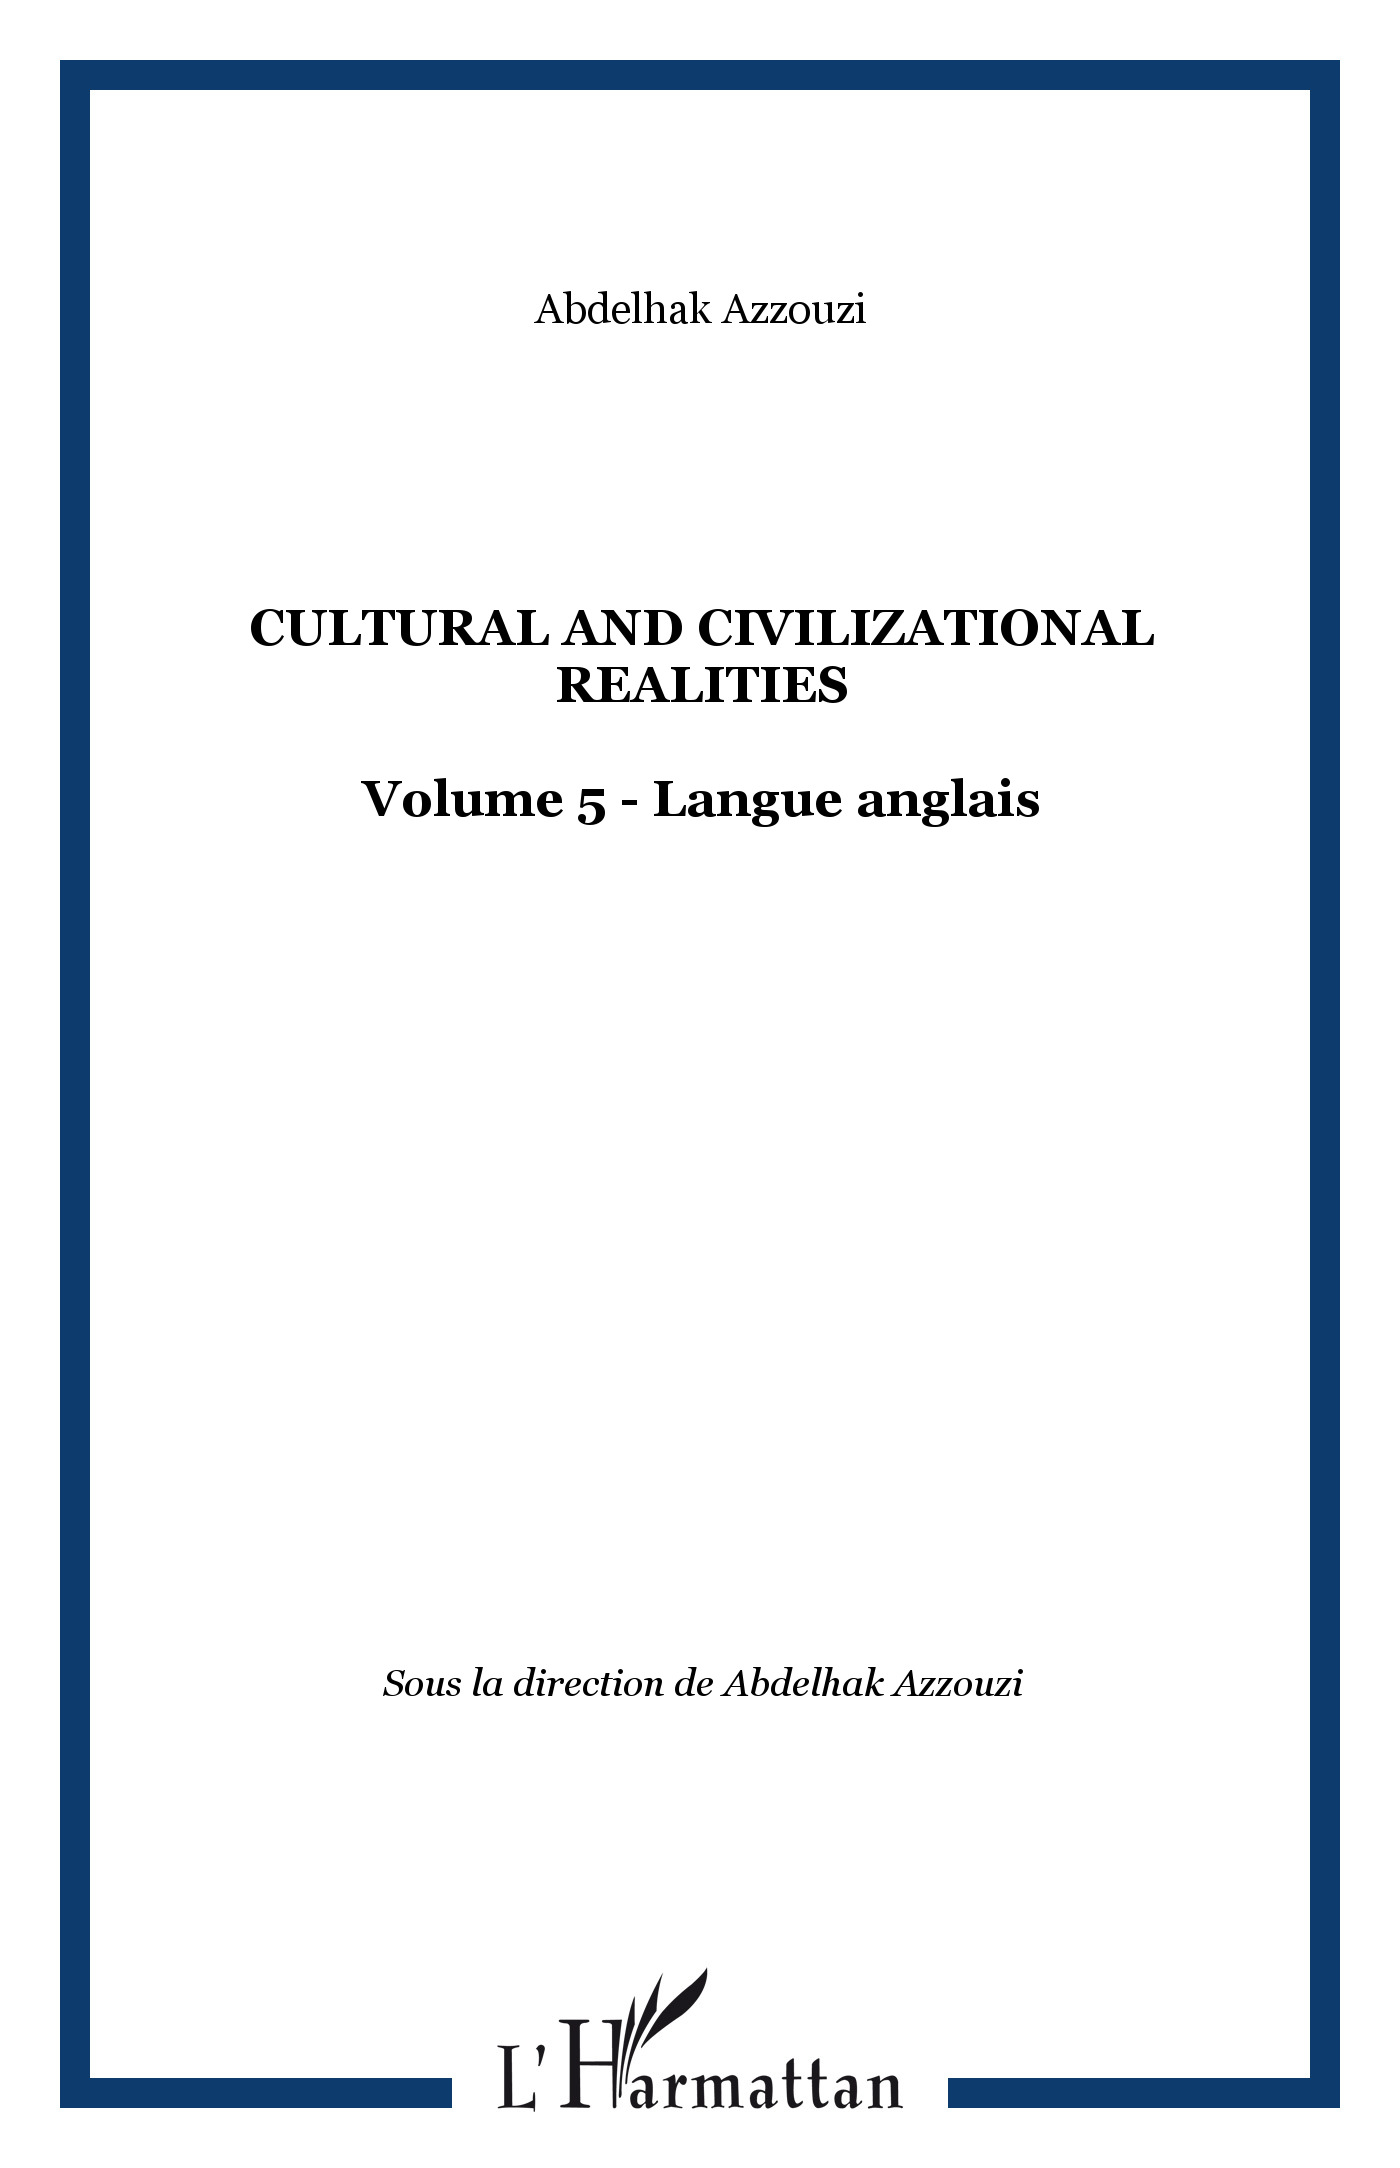 CULTURAL AND CIVILIZATIONAL REALITIES